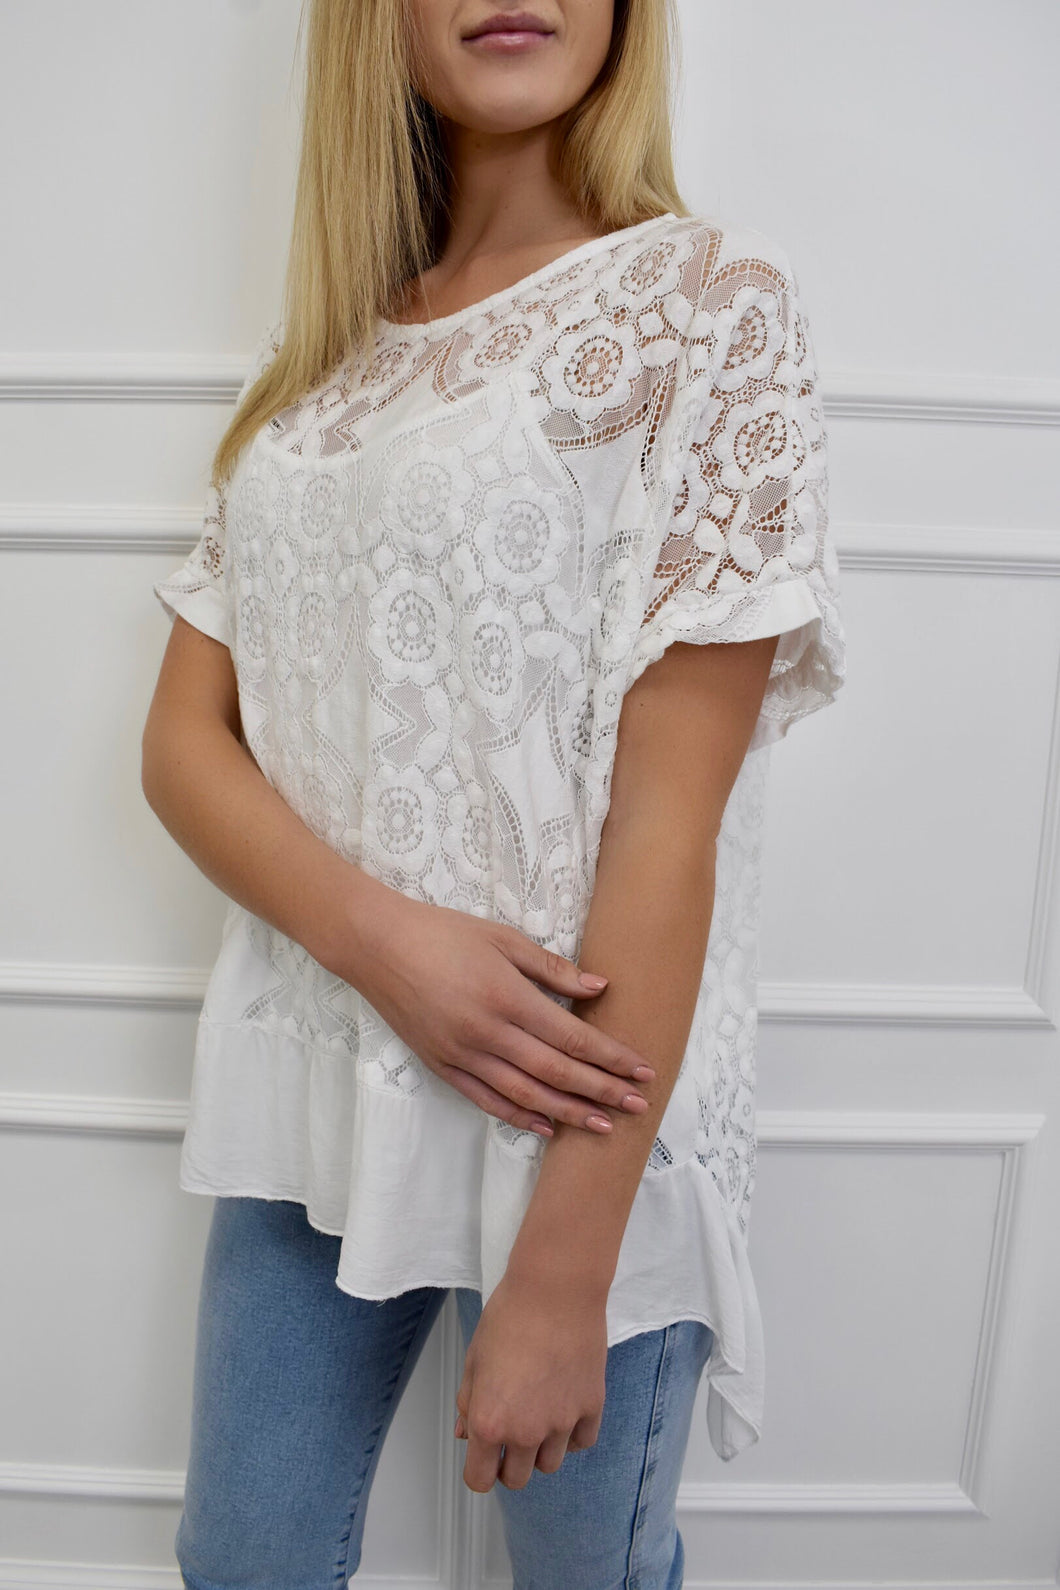 The Rome Lace Tee